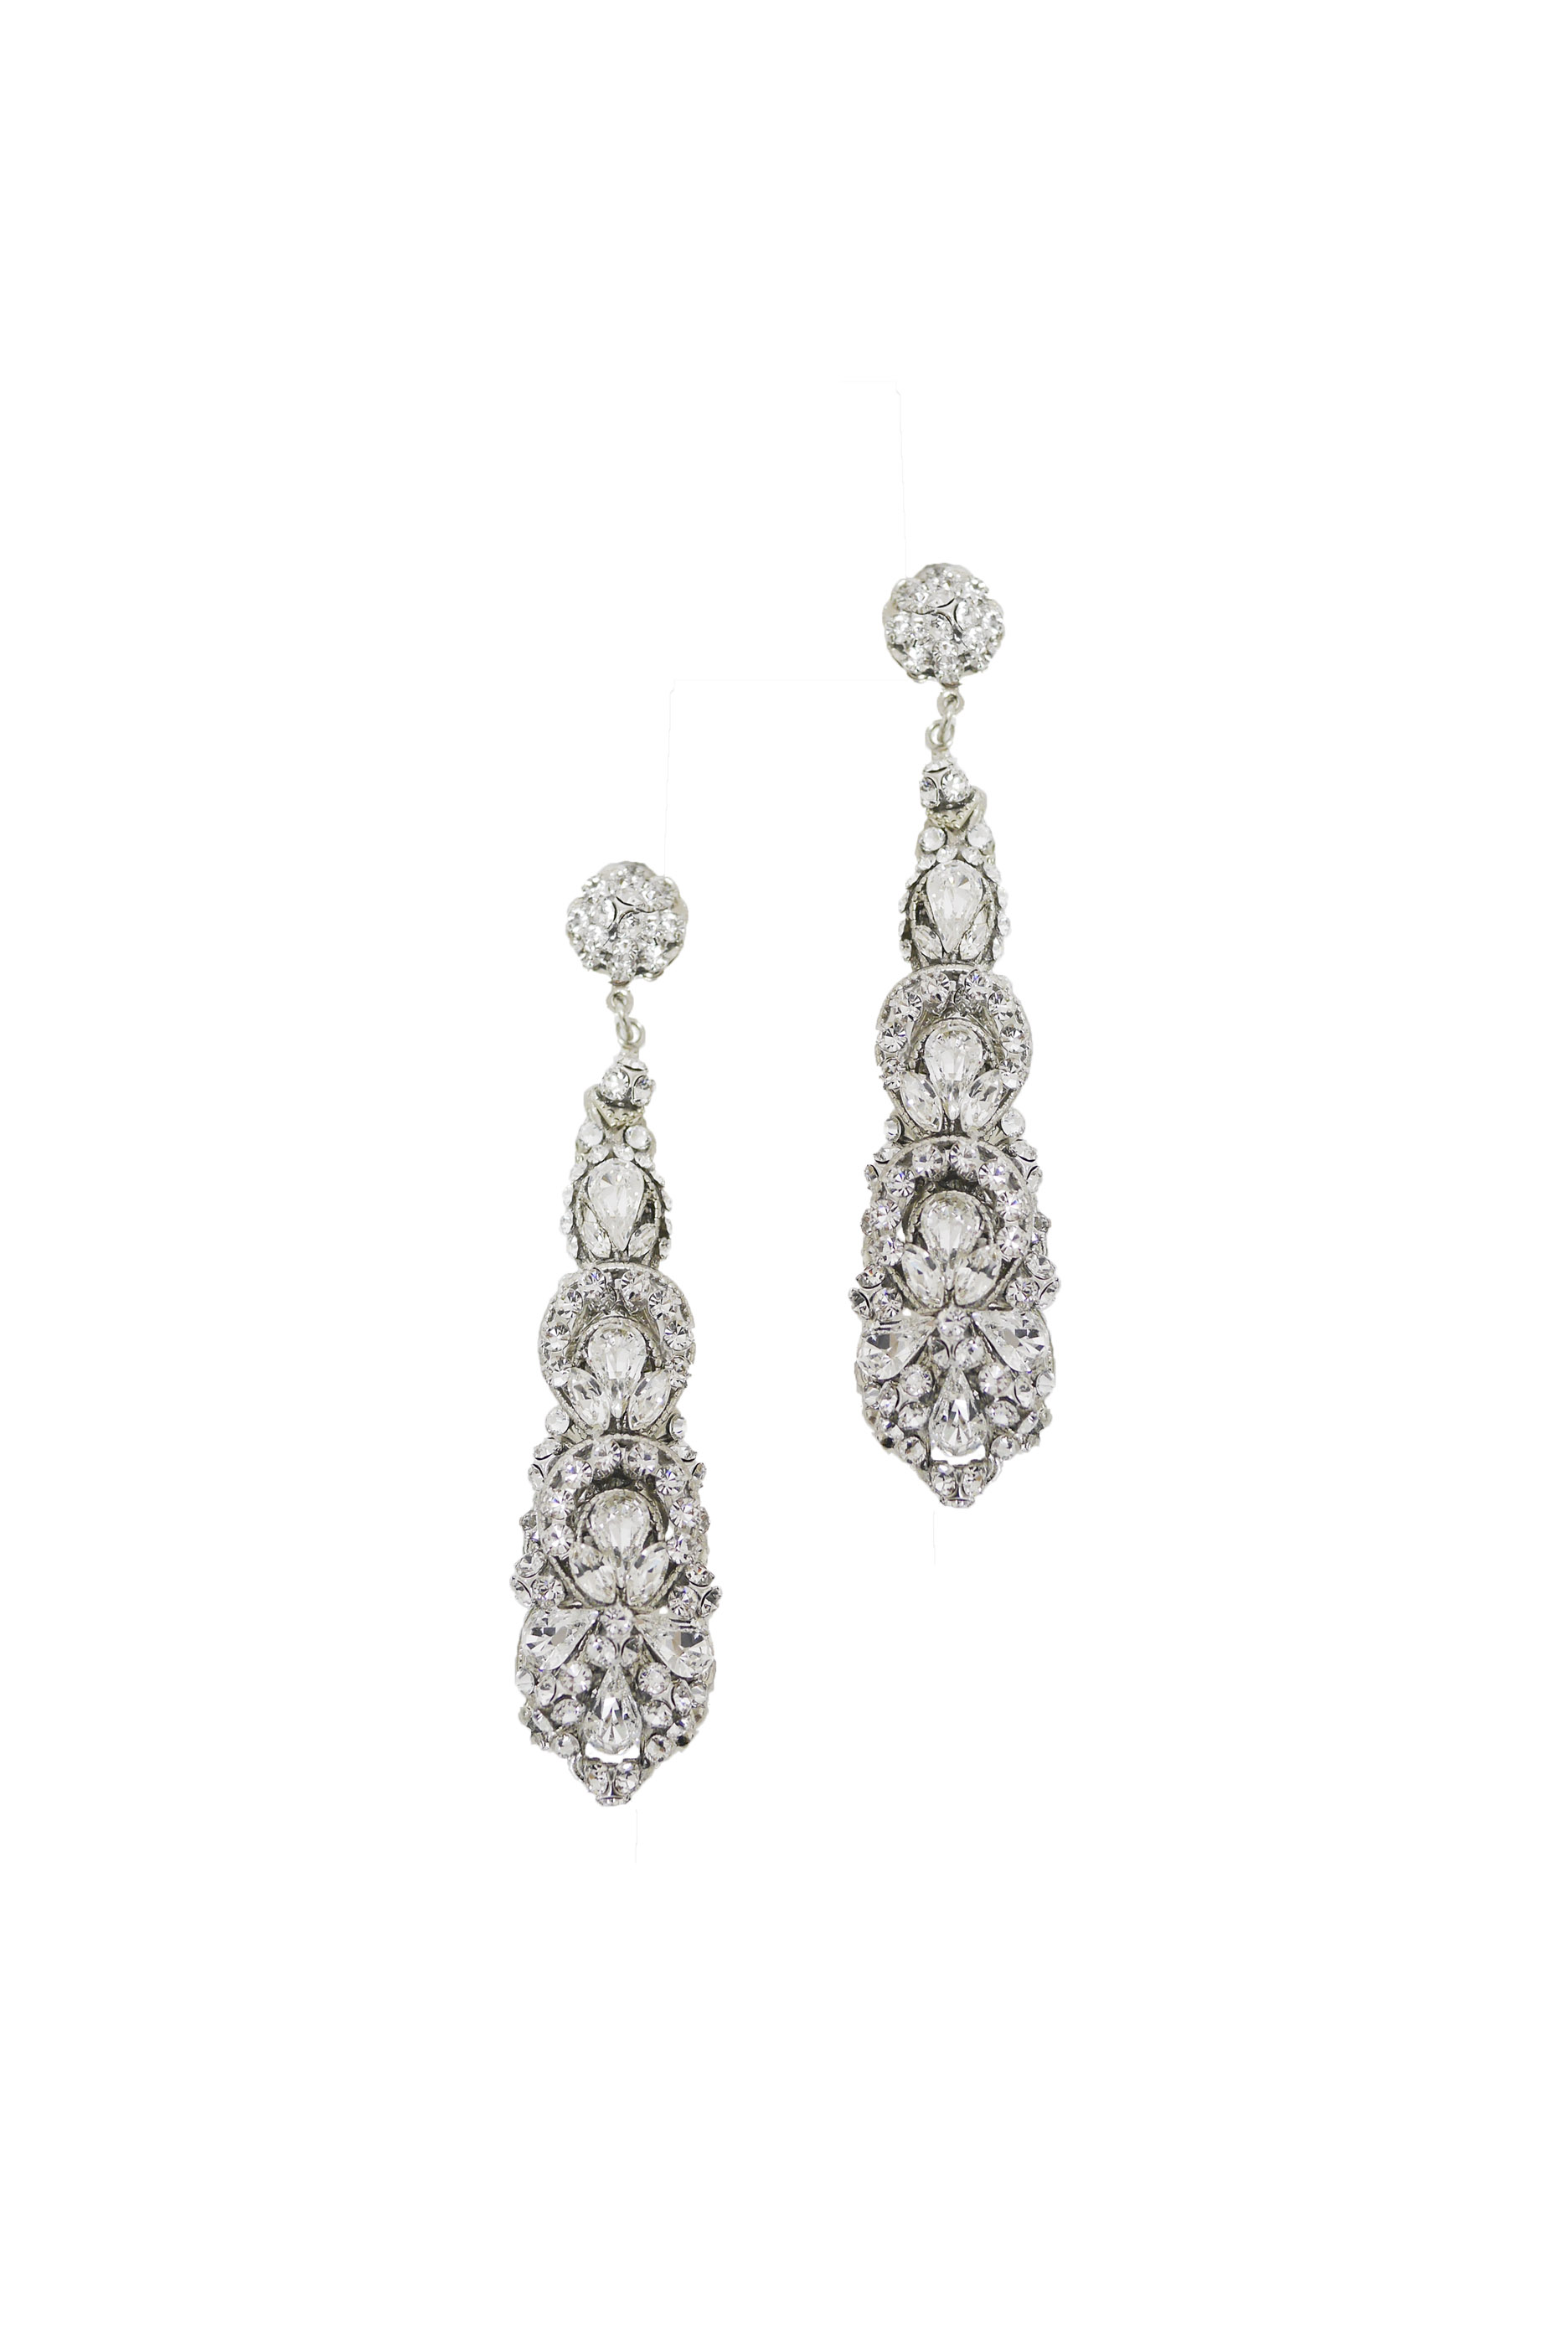 [RENTAL][Madelyn Earrings Long]by MariaElena(参考価格¥54,000)